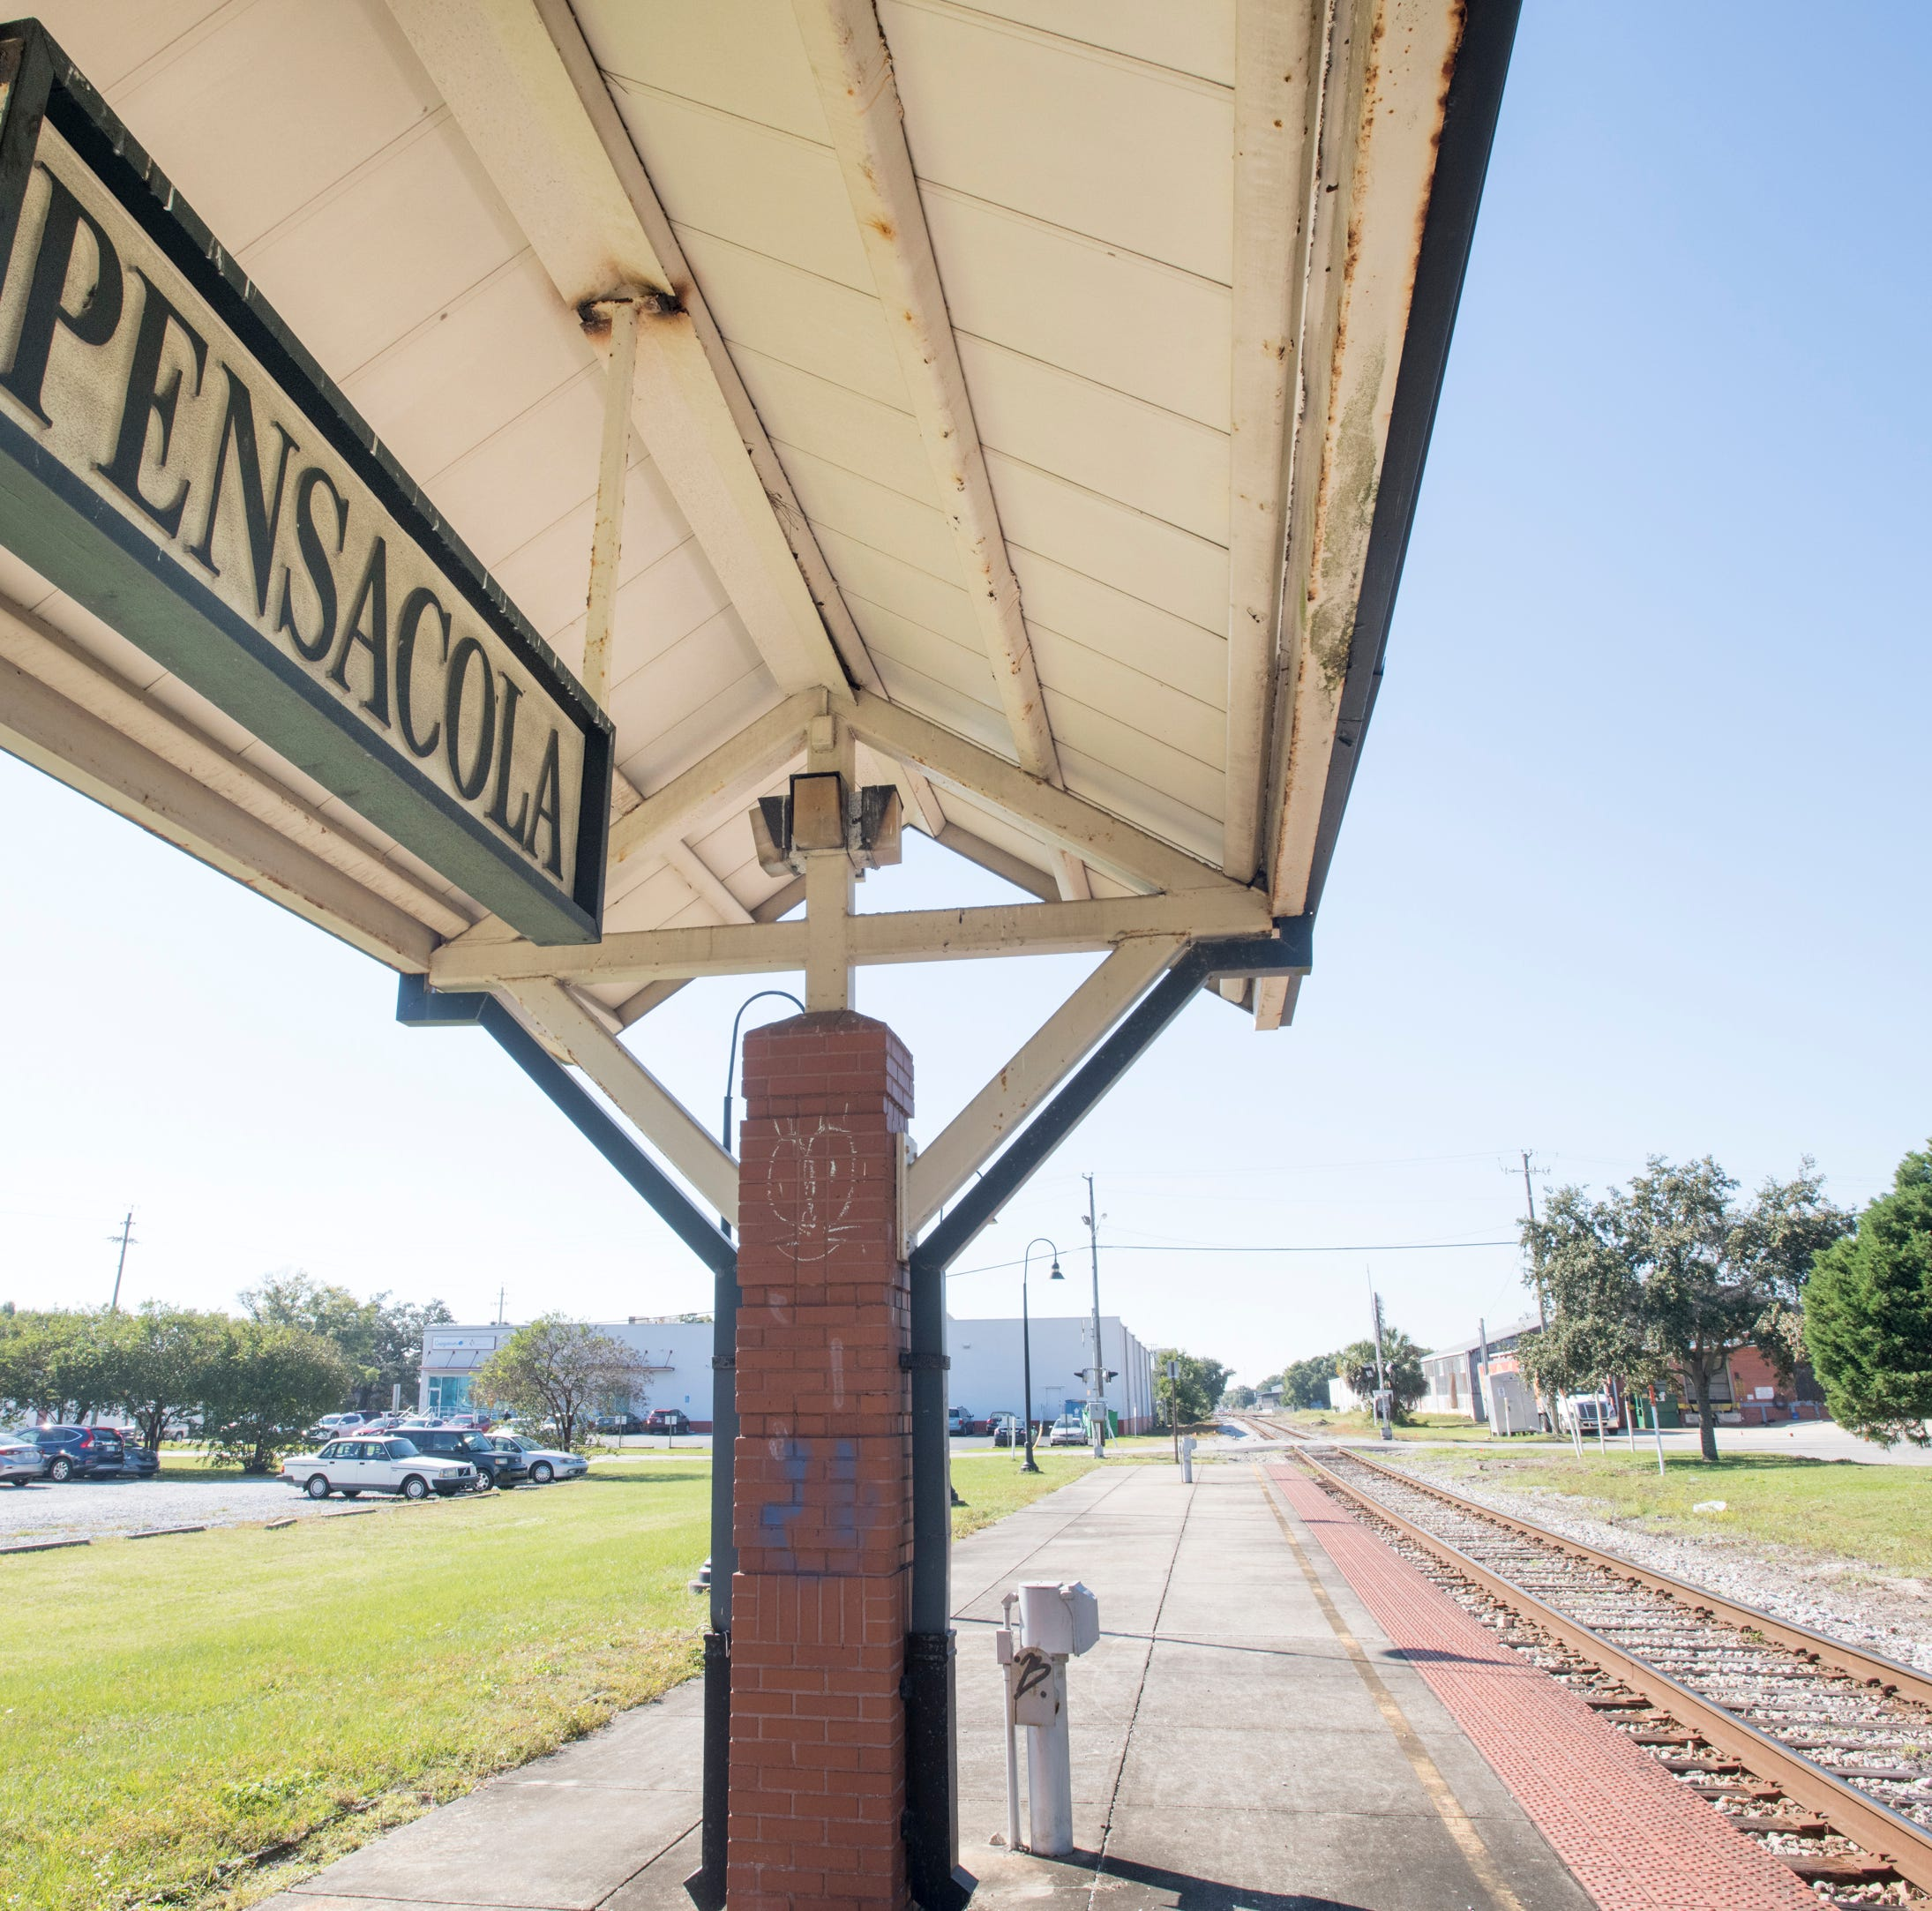 Railroad giant CSX announces deal to sell rail line between Pensacola and Jacksonville